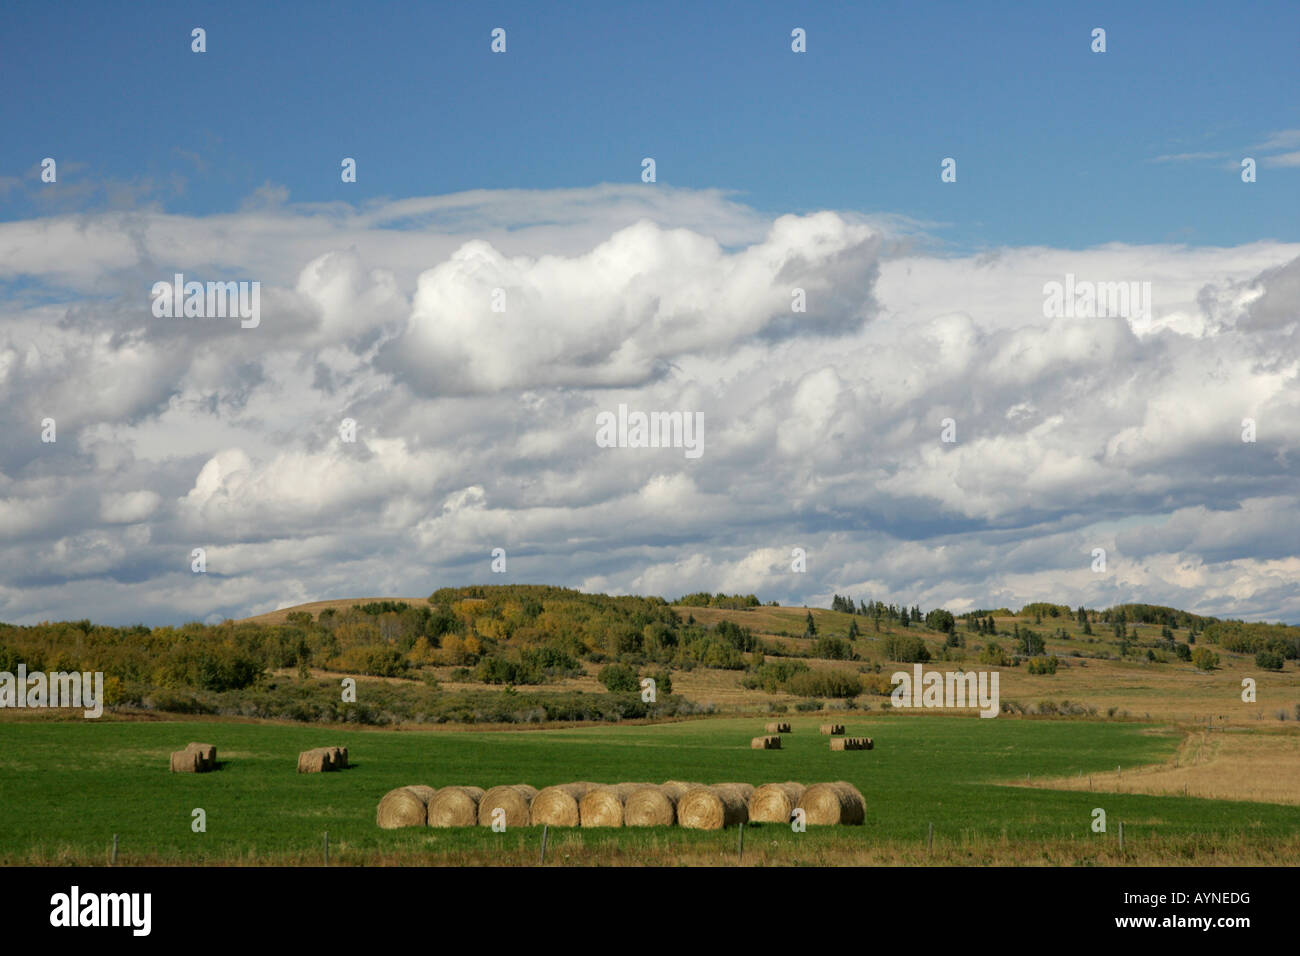 Hayfield in Alberta, Canada, with cylindrical hay bales. - Stock Image